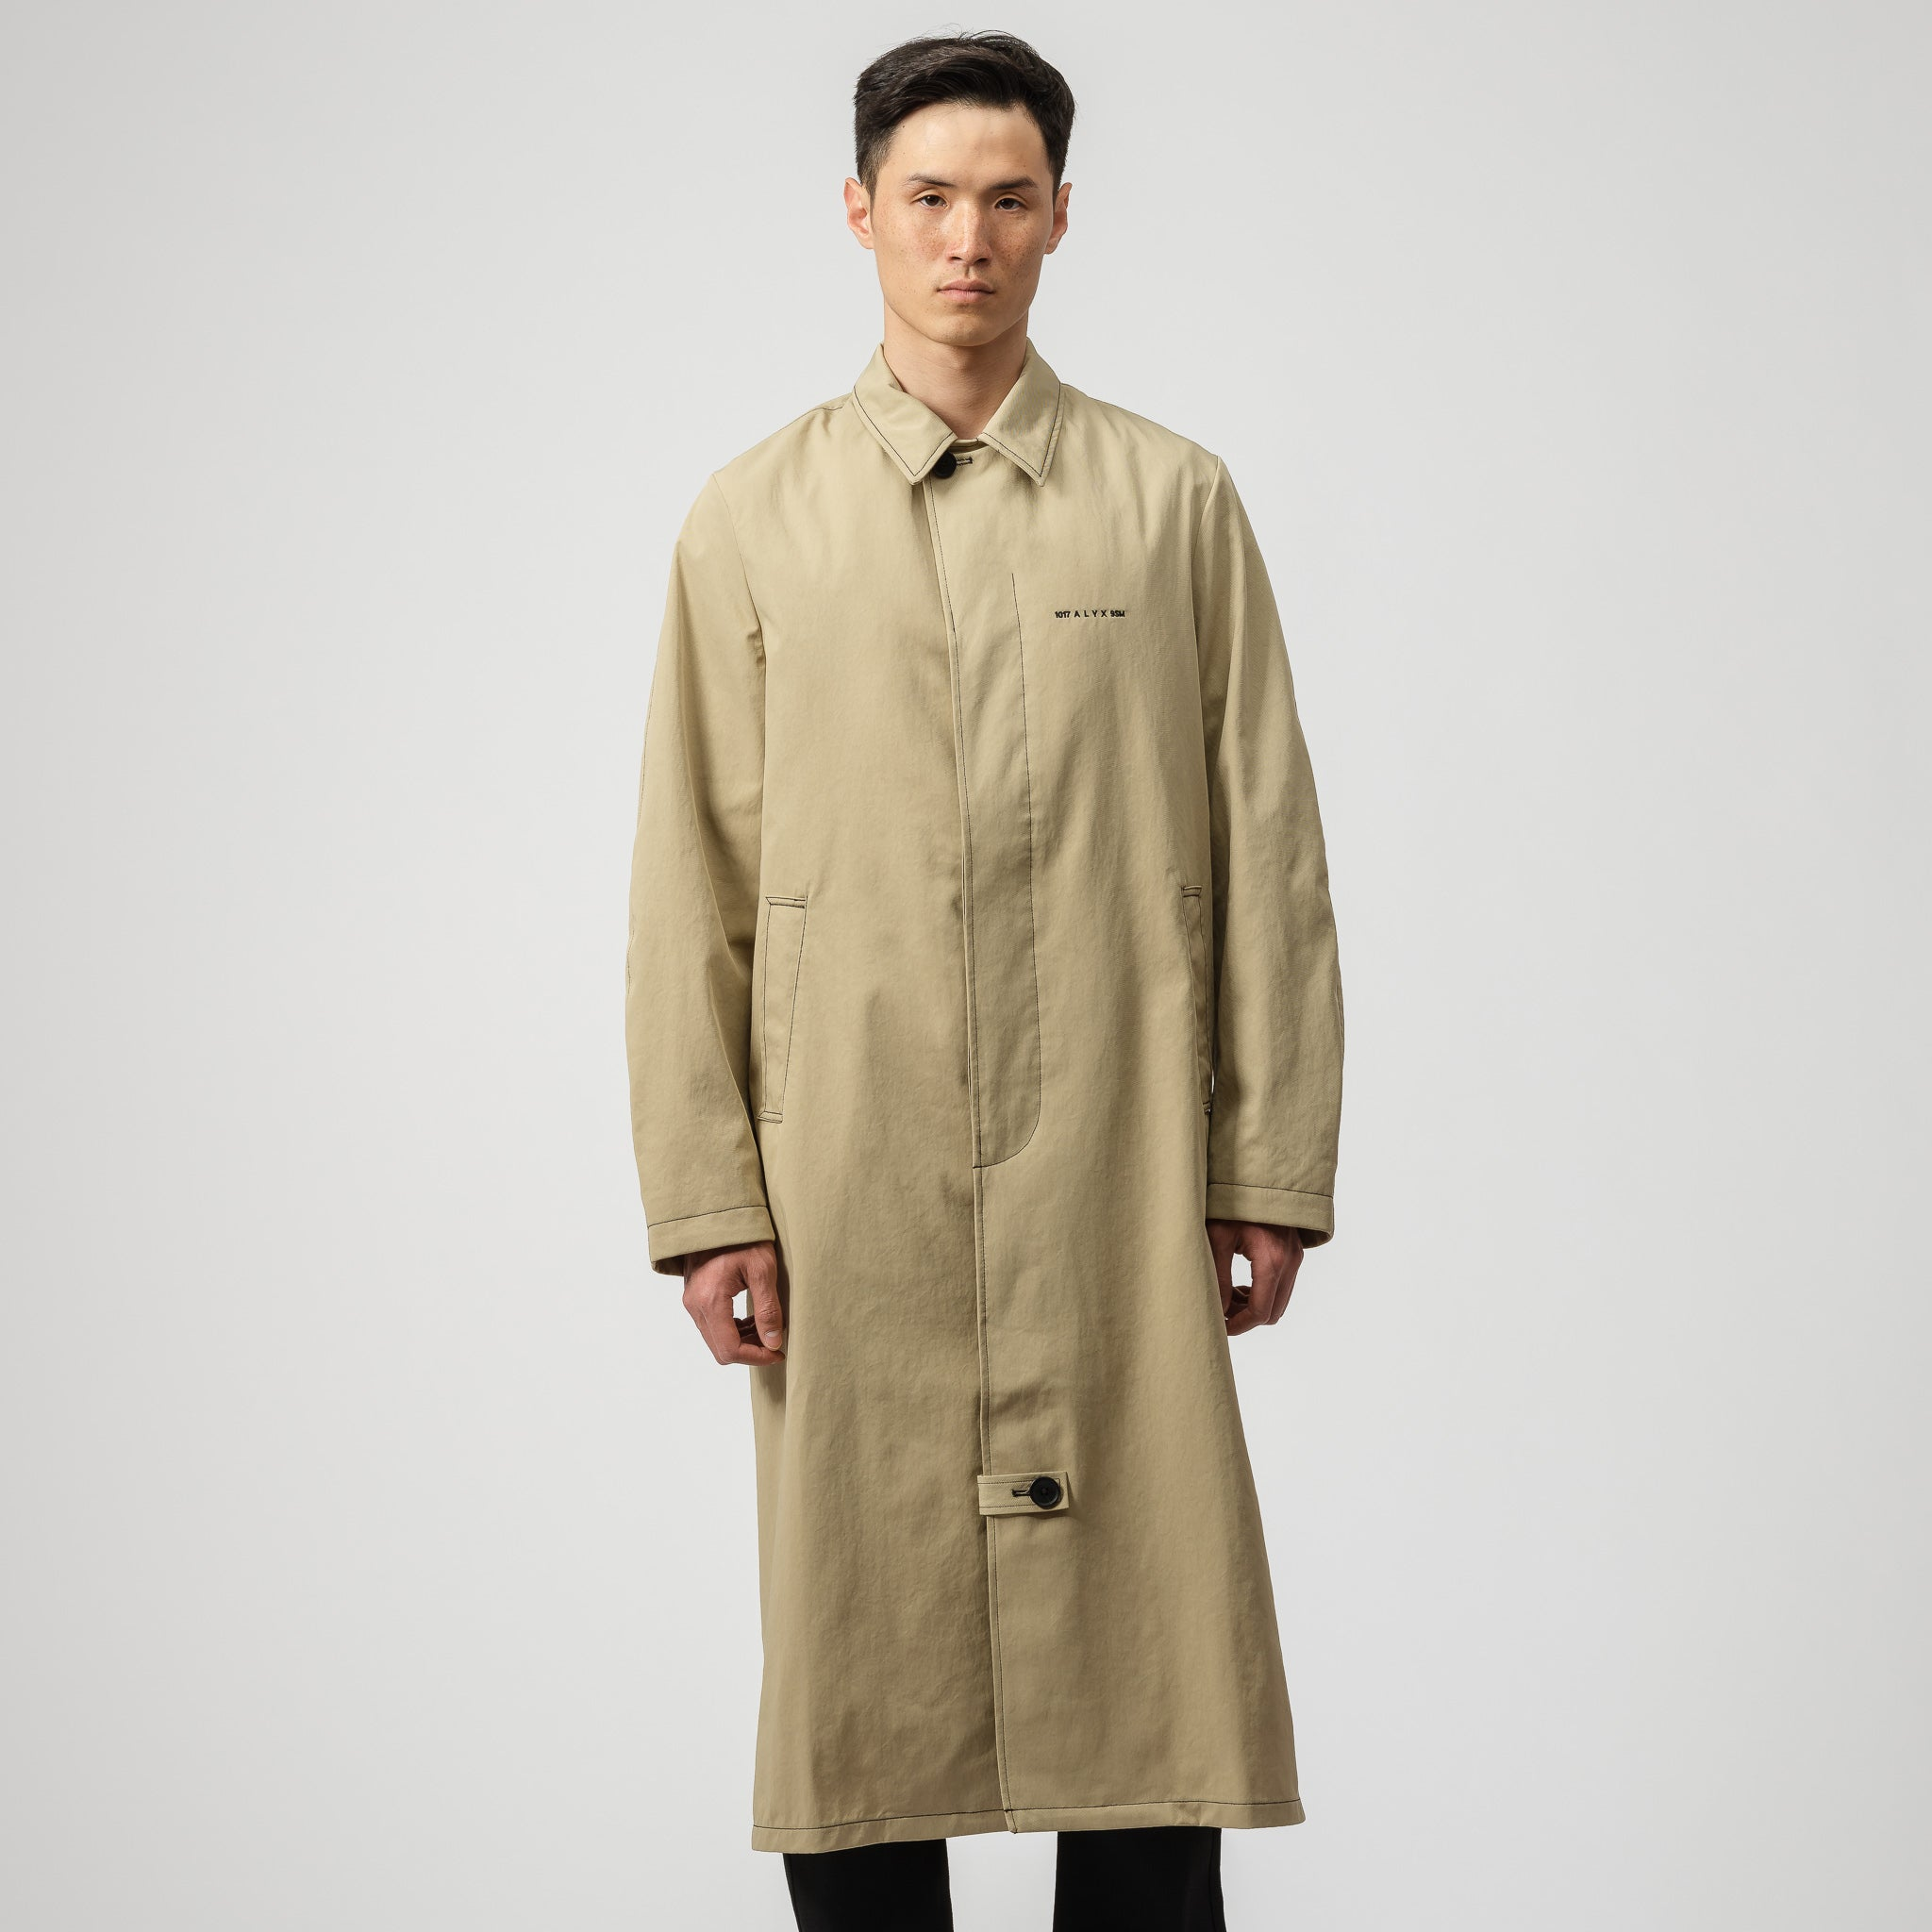 Williams Classic Coat in Tan